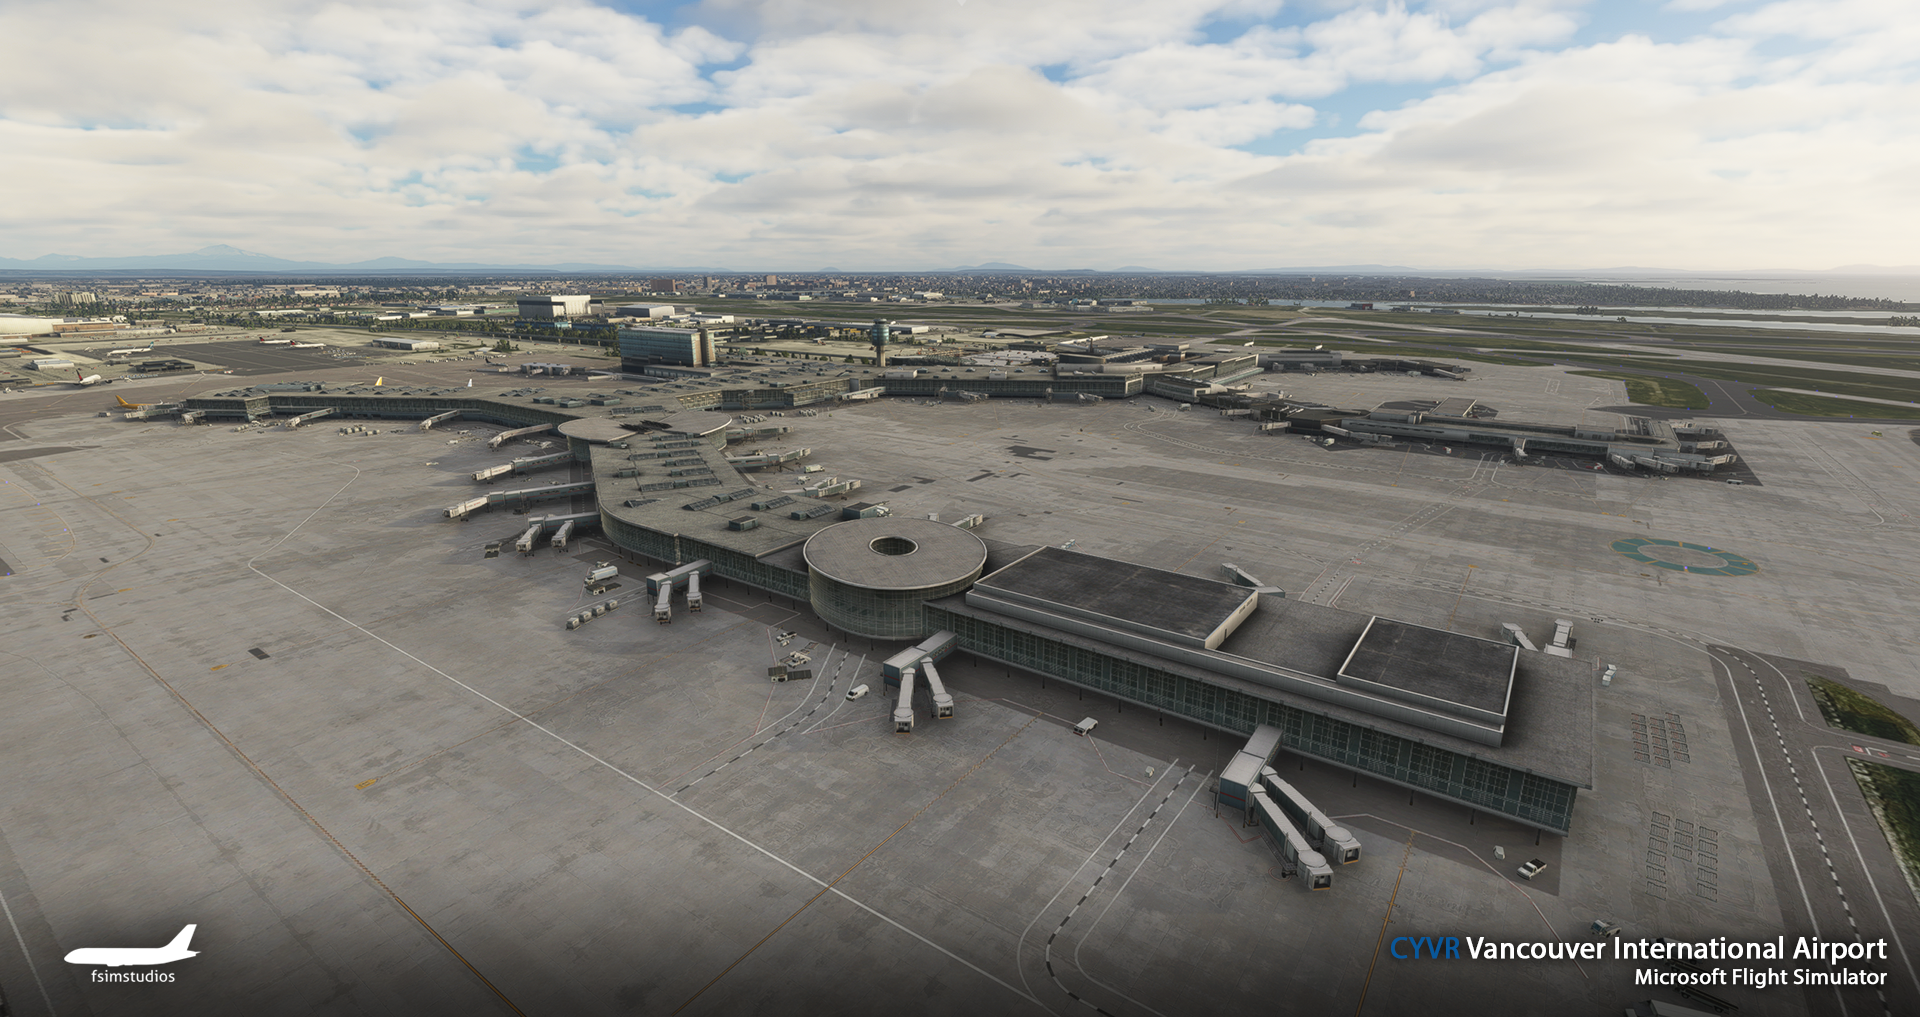 FSIMSTUDIOS - VANCOUVER INTERNATIONAL AIRPORT CYVR MSFS